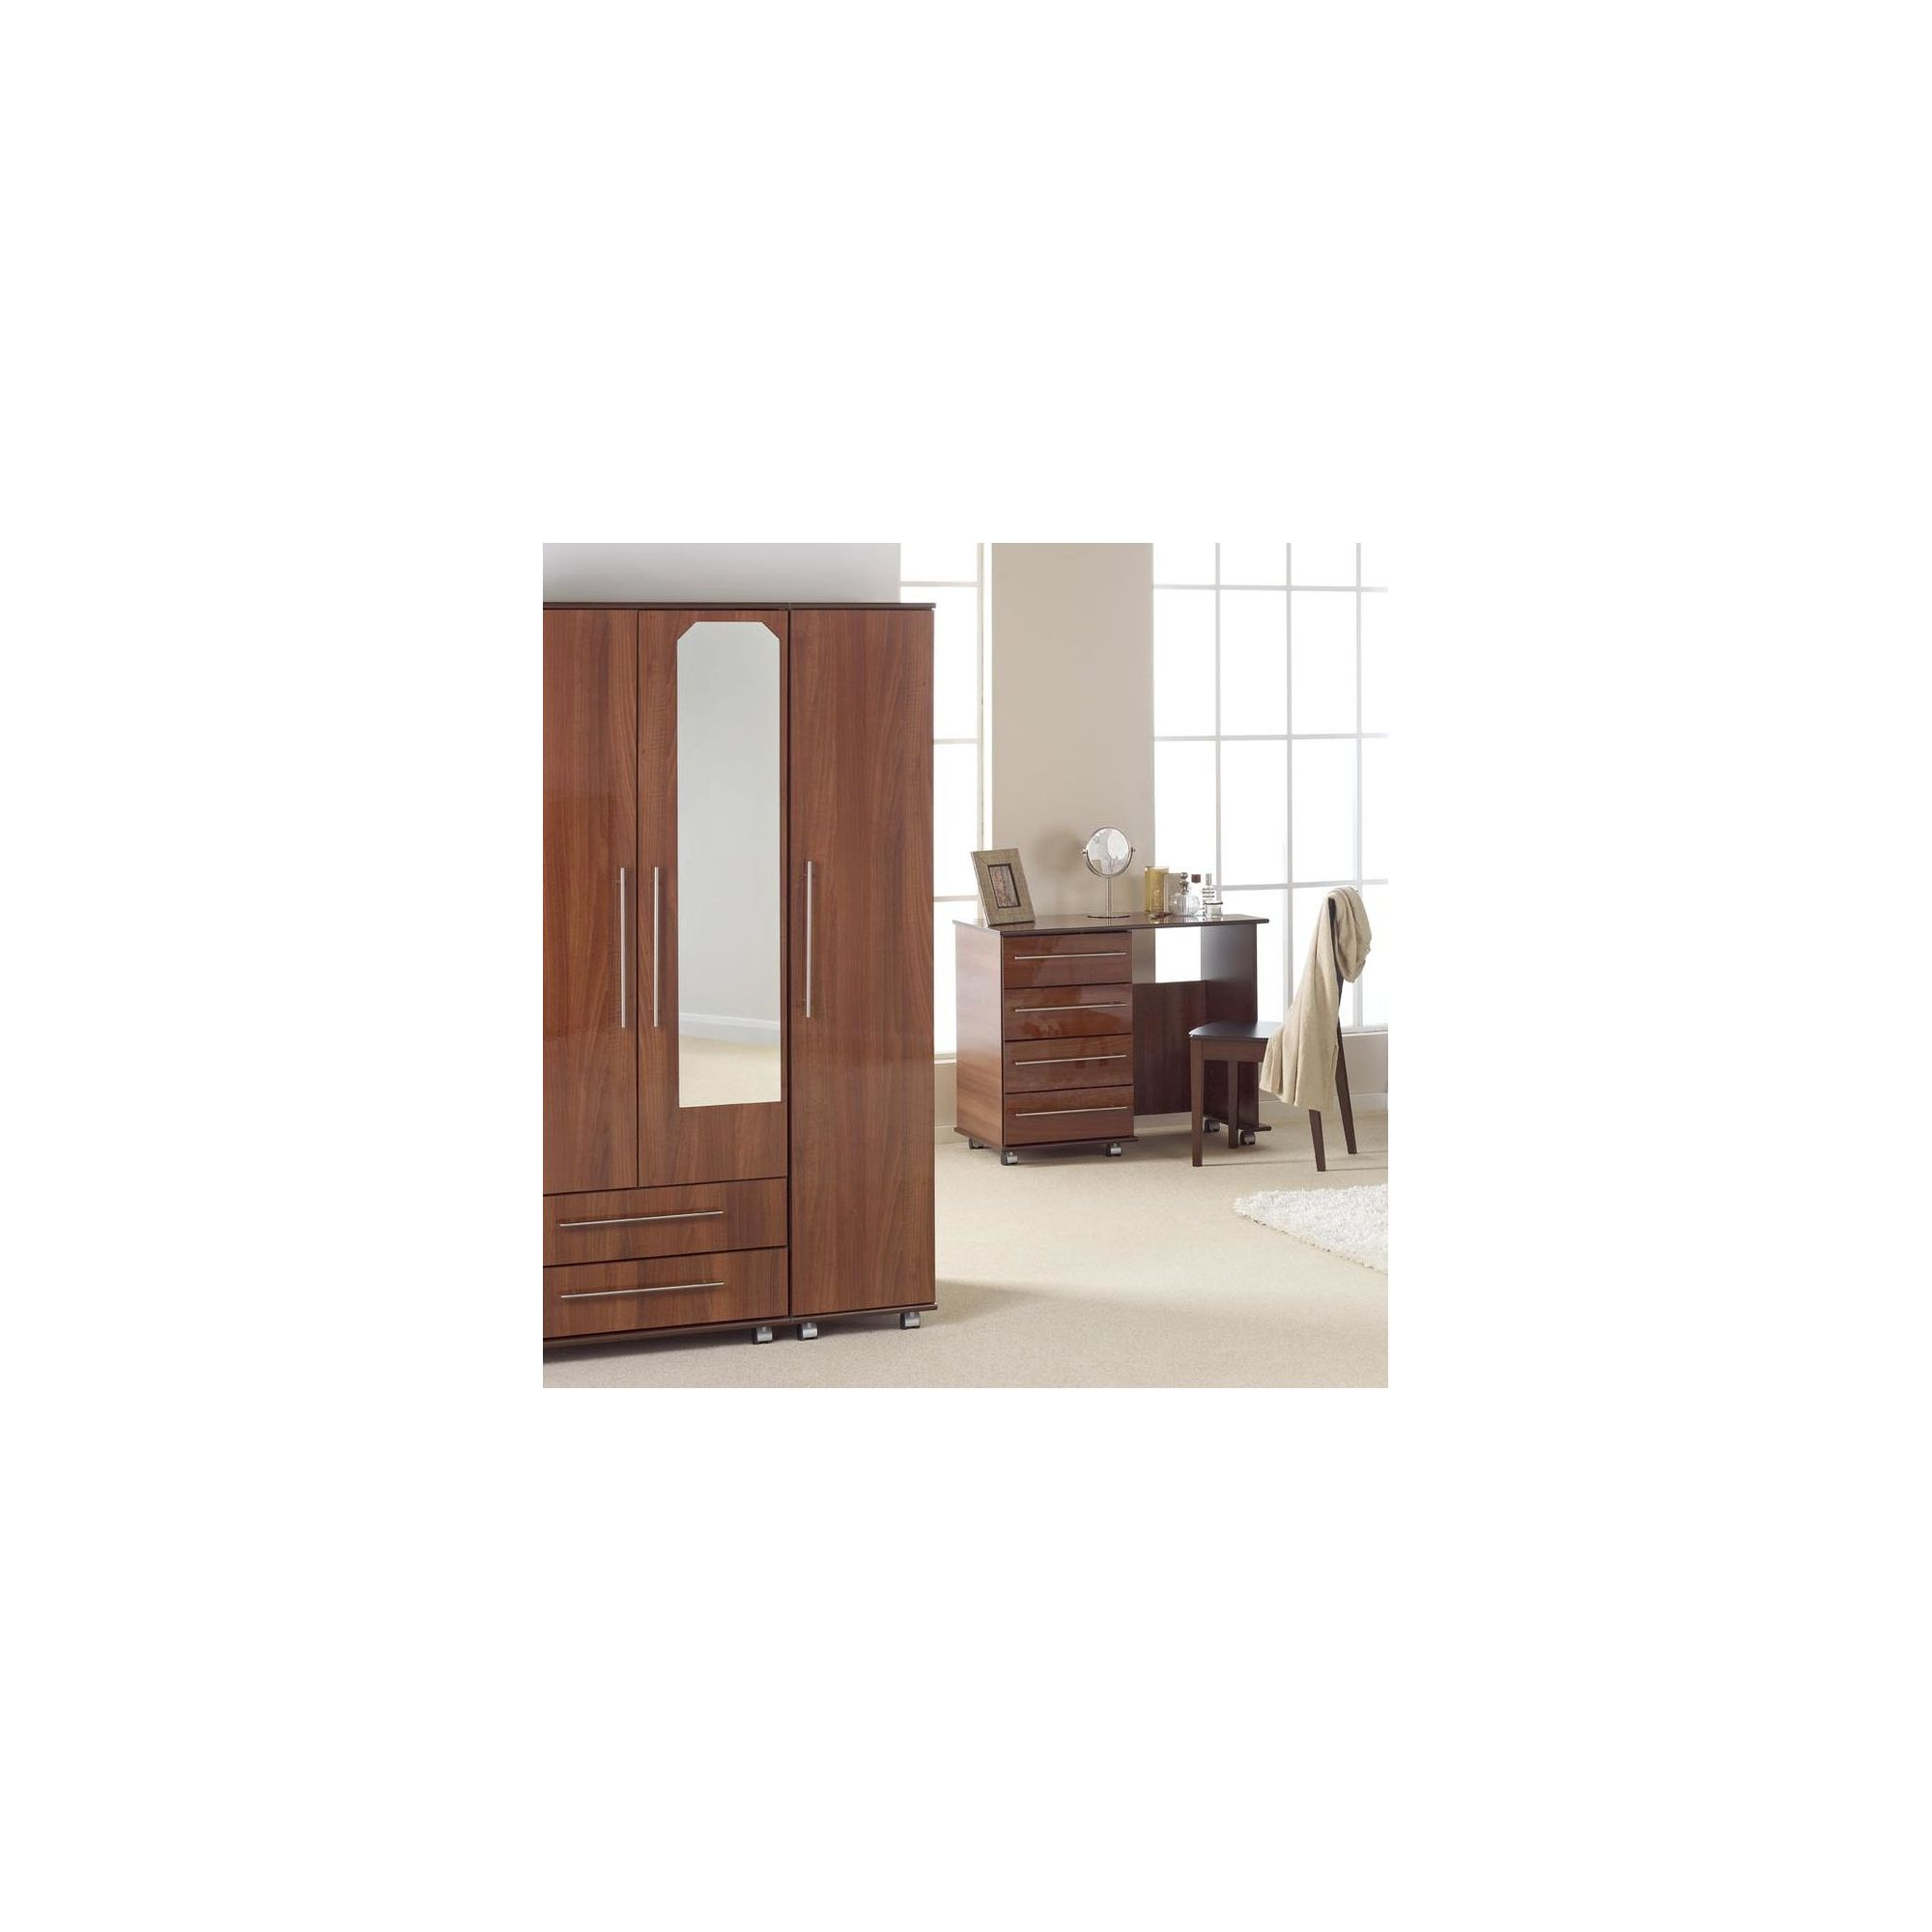 Ideal Furniture New York Triple Wardrobe with Two Drawers and Mirror - Gloss Black at Tesco Direct